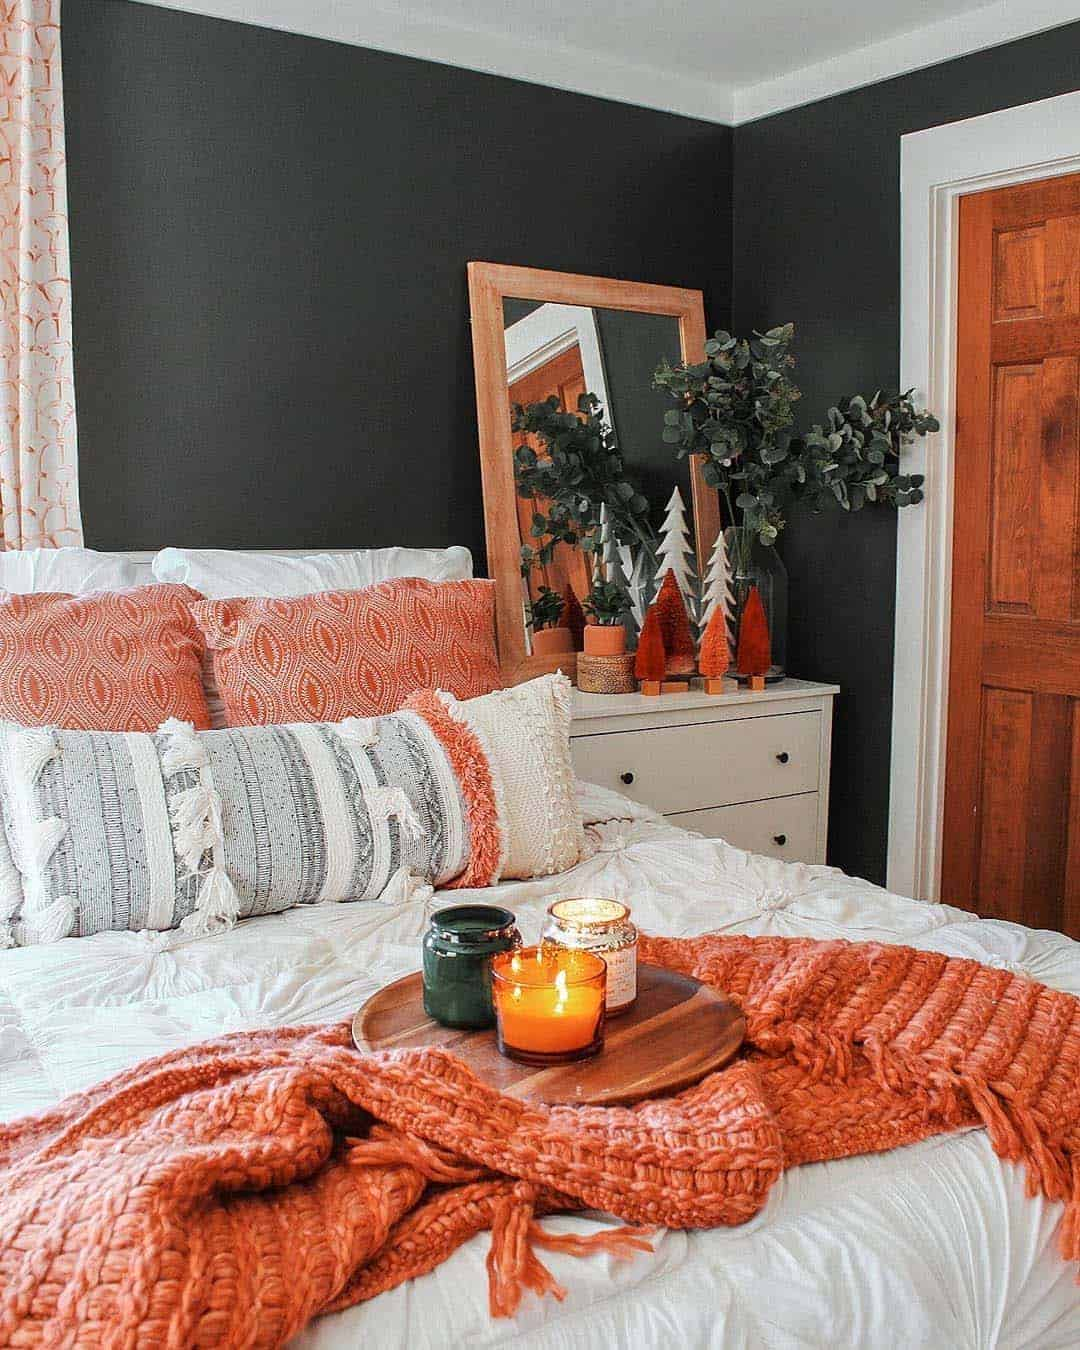 Bedroom-Decorating-Ideas-For-Autumn-09-1-Kindesign